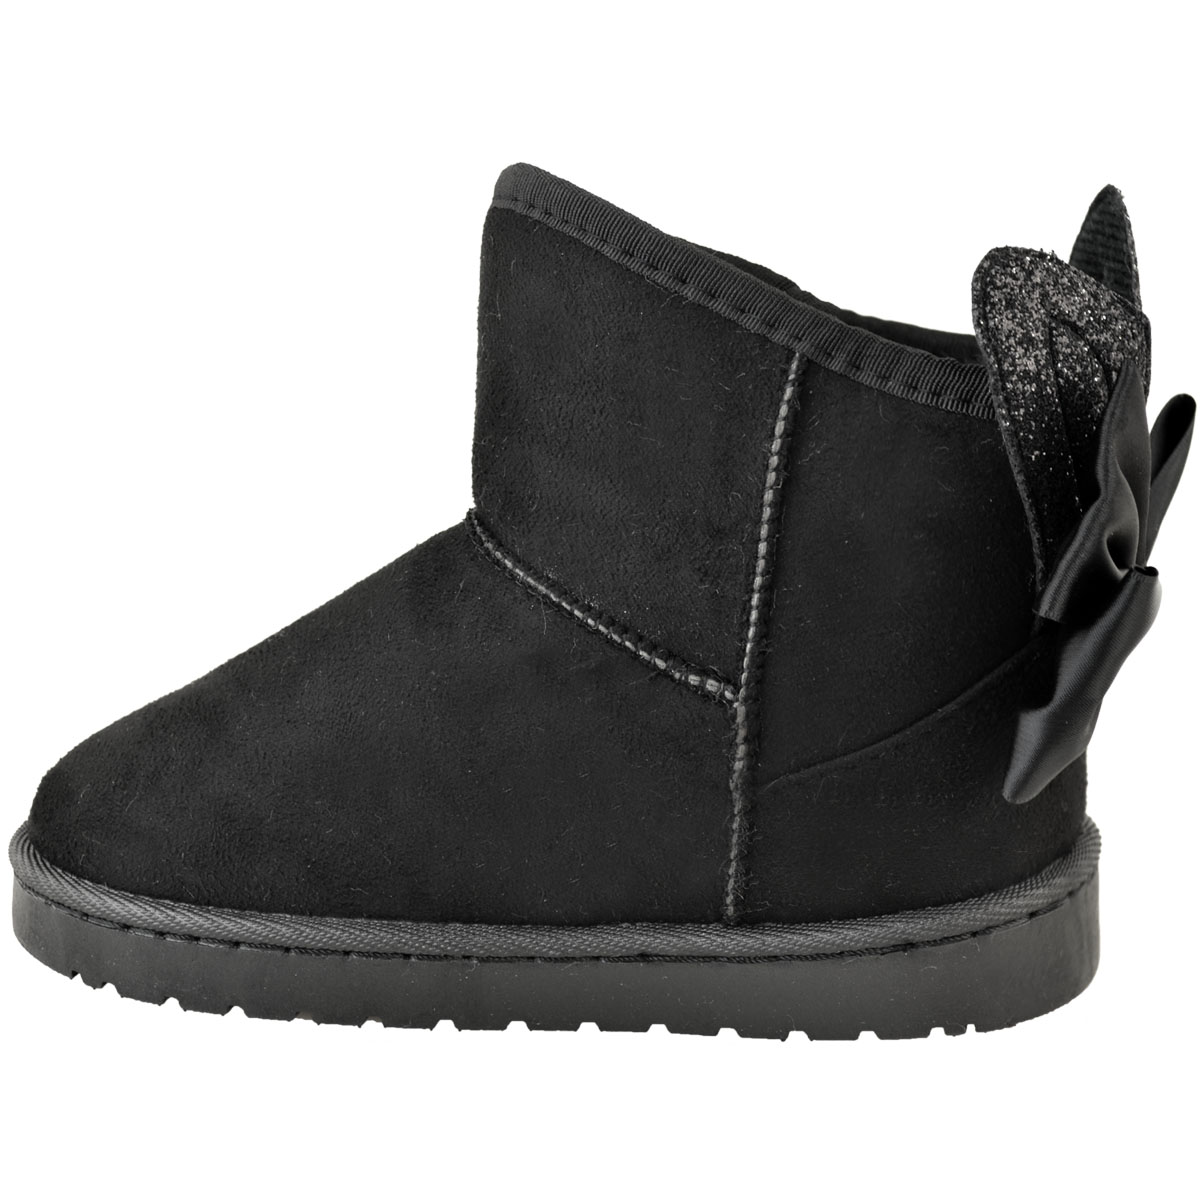 Girls Kids Childrens Snugg Winter Flat Ankle Boots Faux